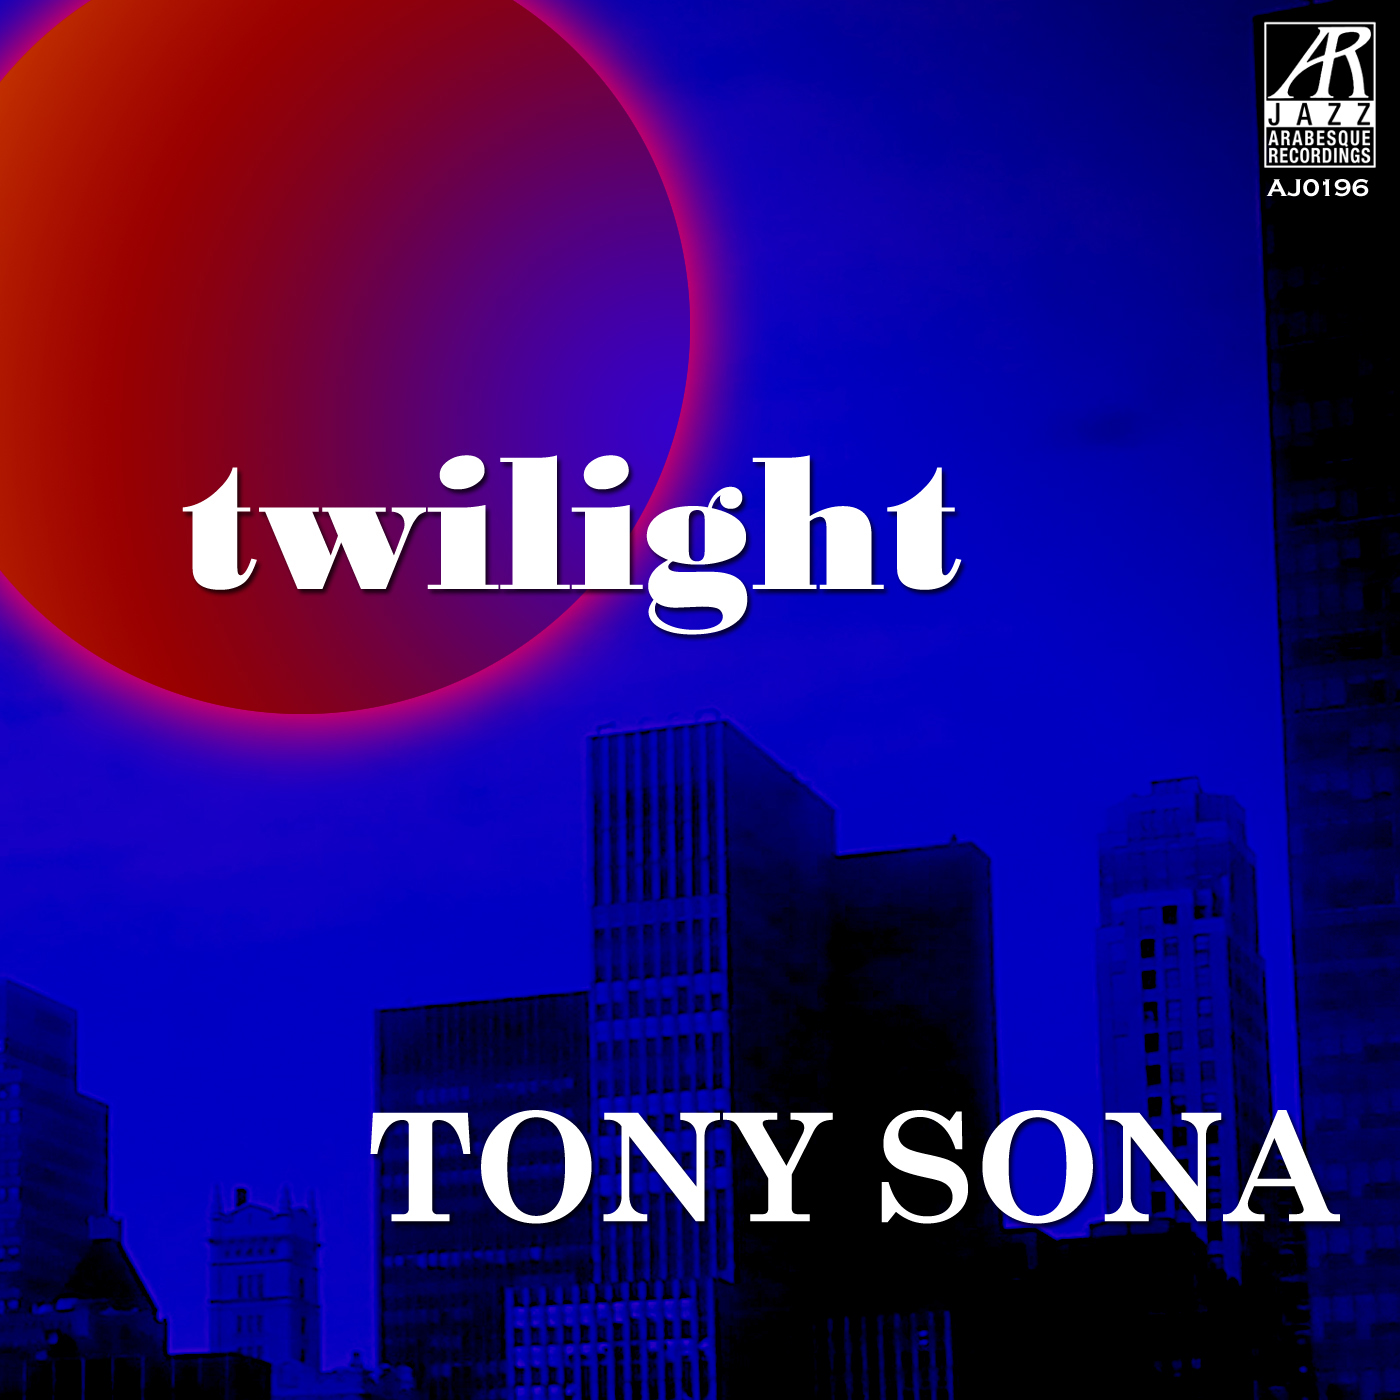 AJ0196  | Twilight - EP |  Tony Sona